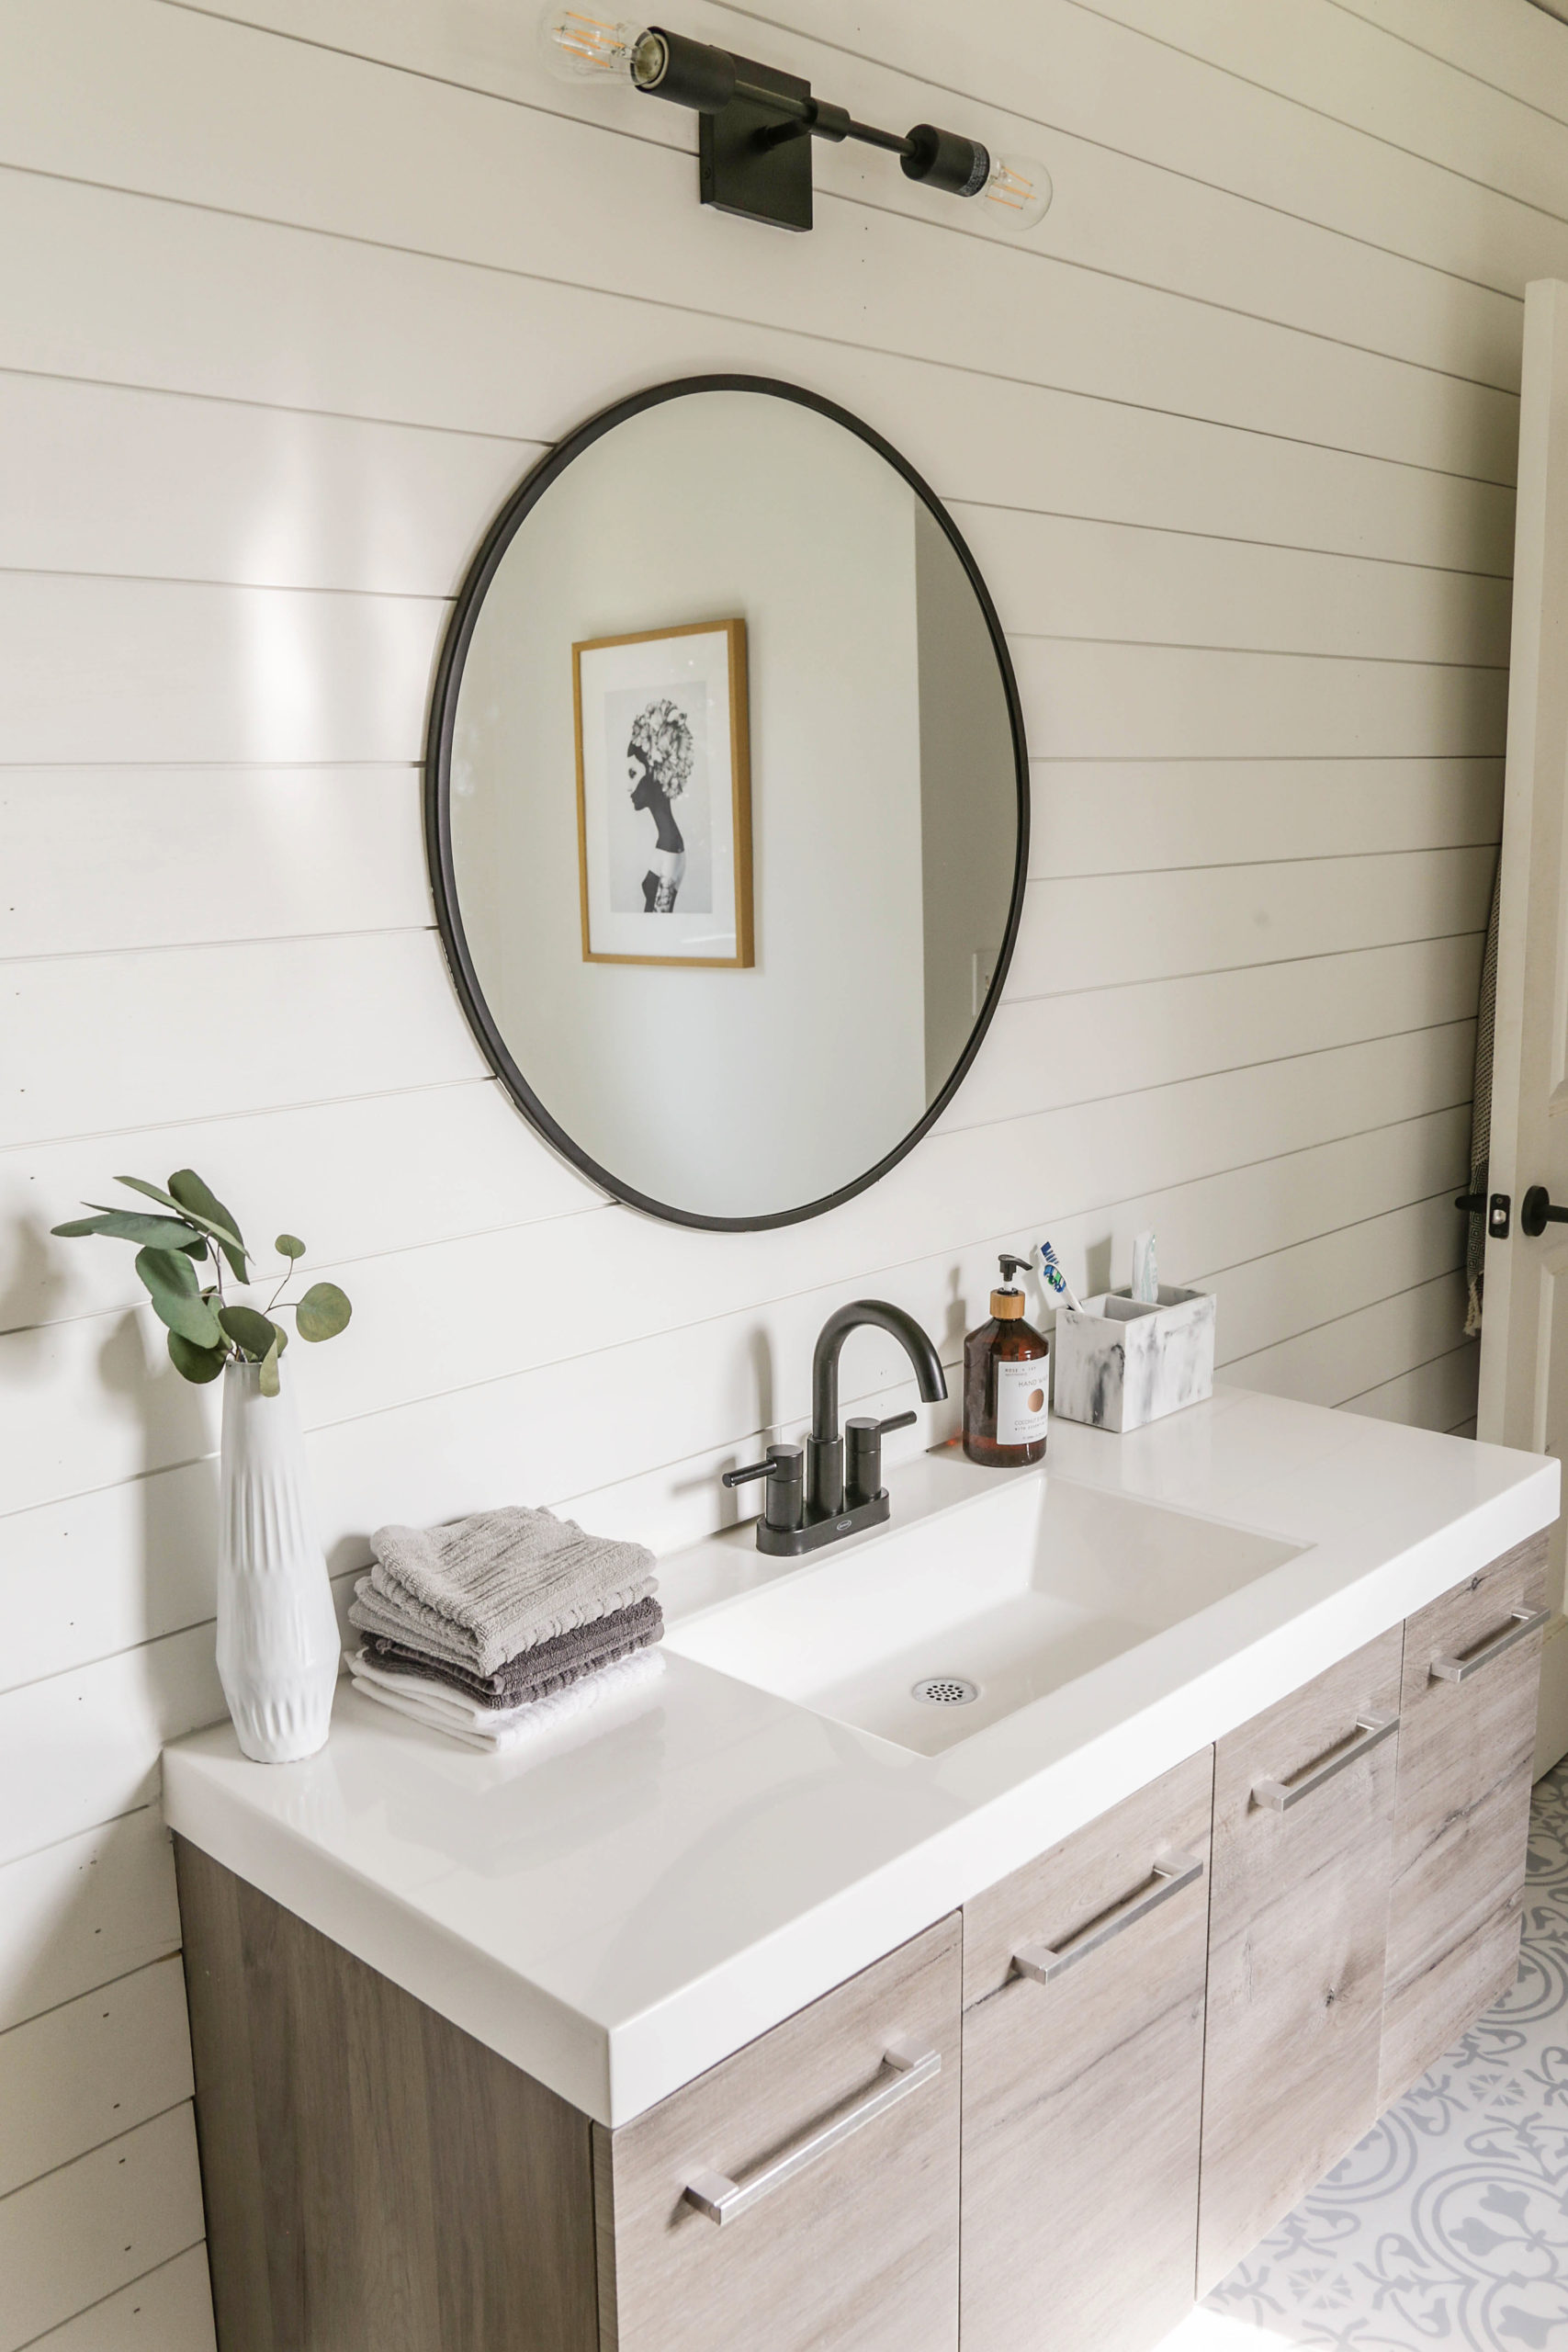 Reveal: Boho Farmhouse Master Bathroom Remodel with Decor ...